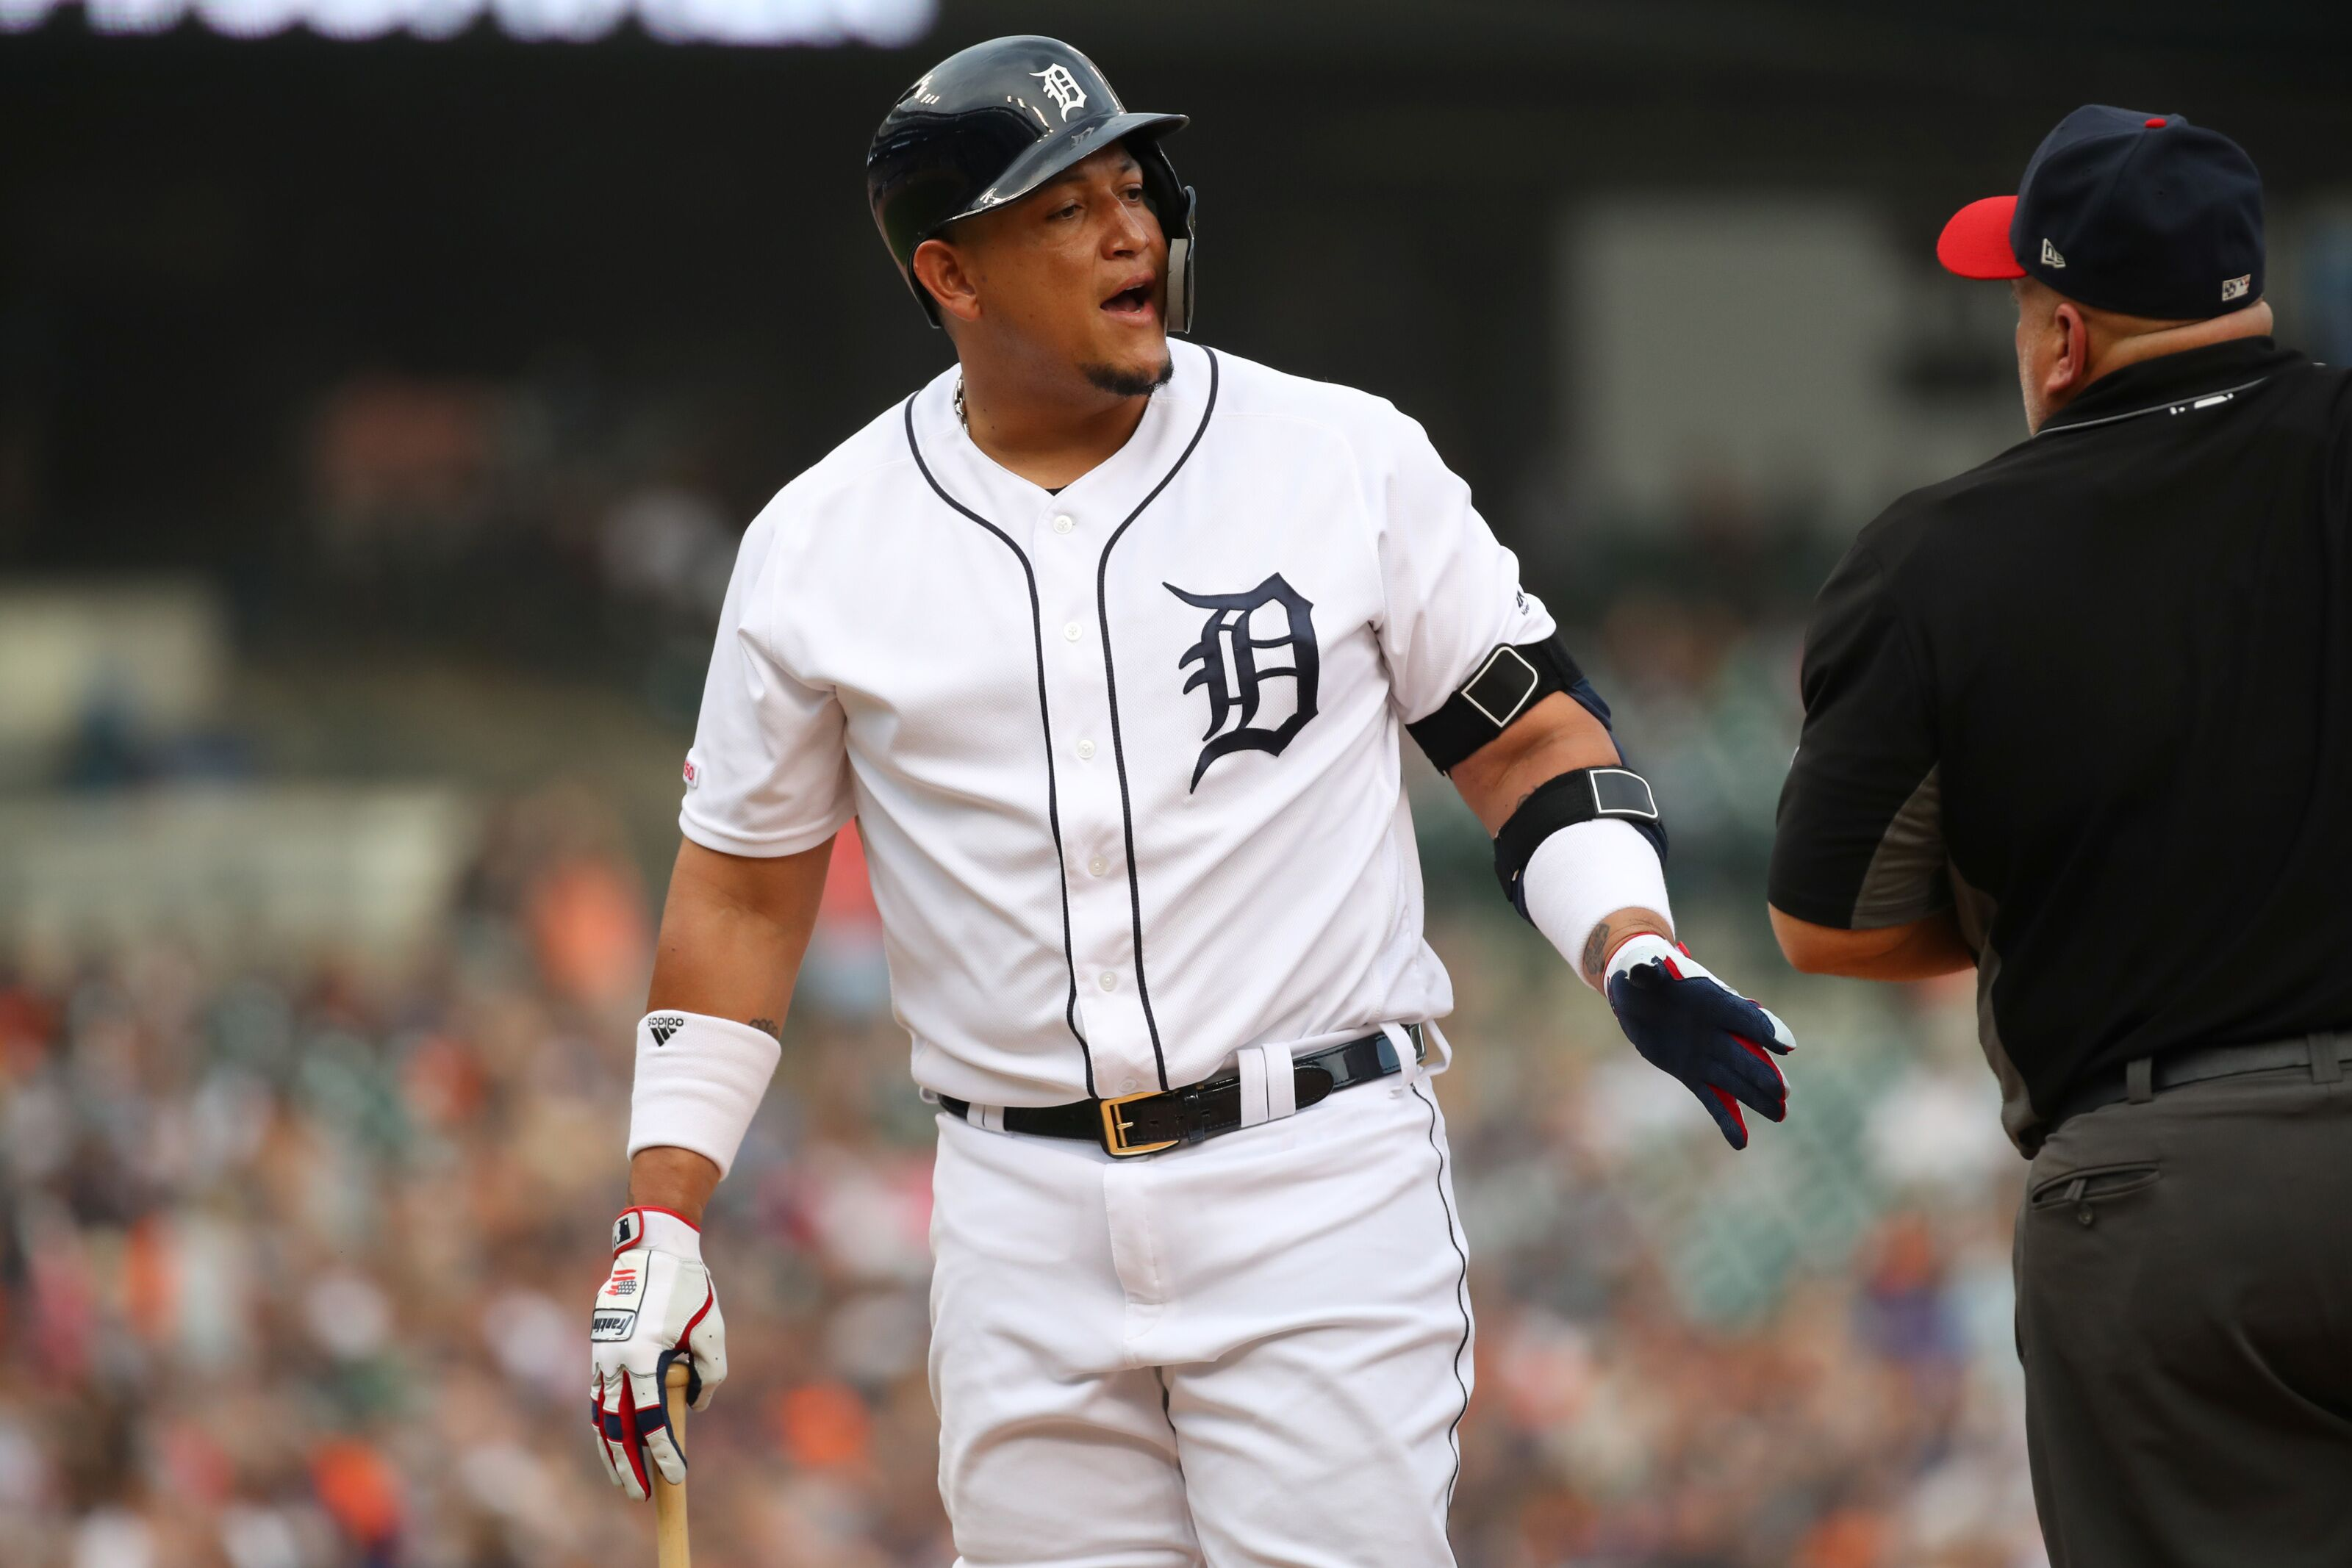 The Detroit Tigers are clearly lacking veteran leadership